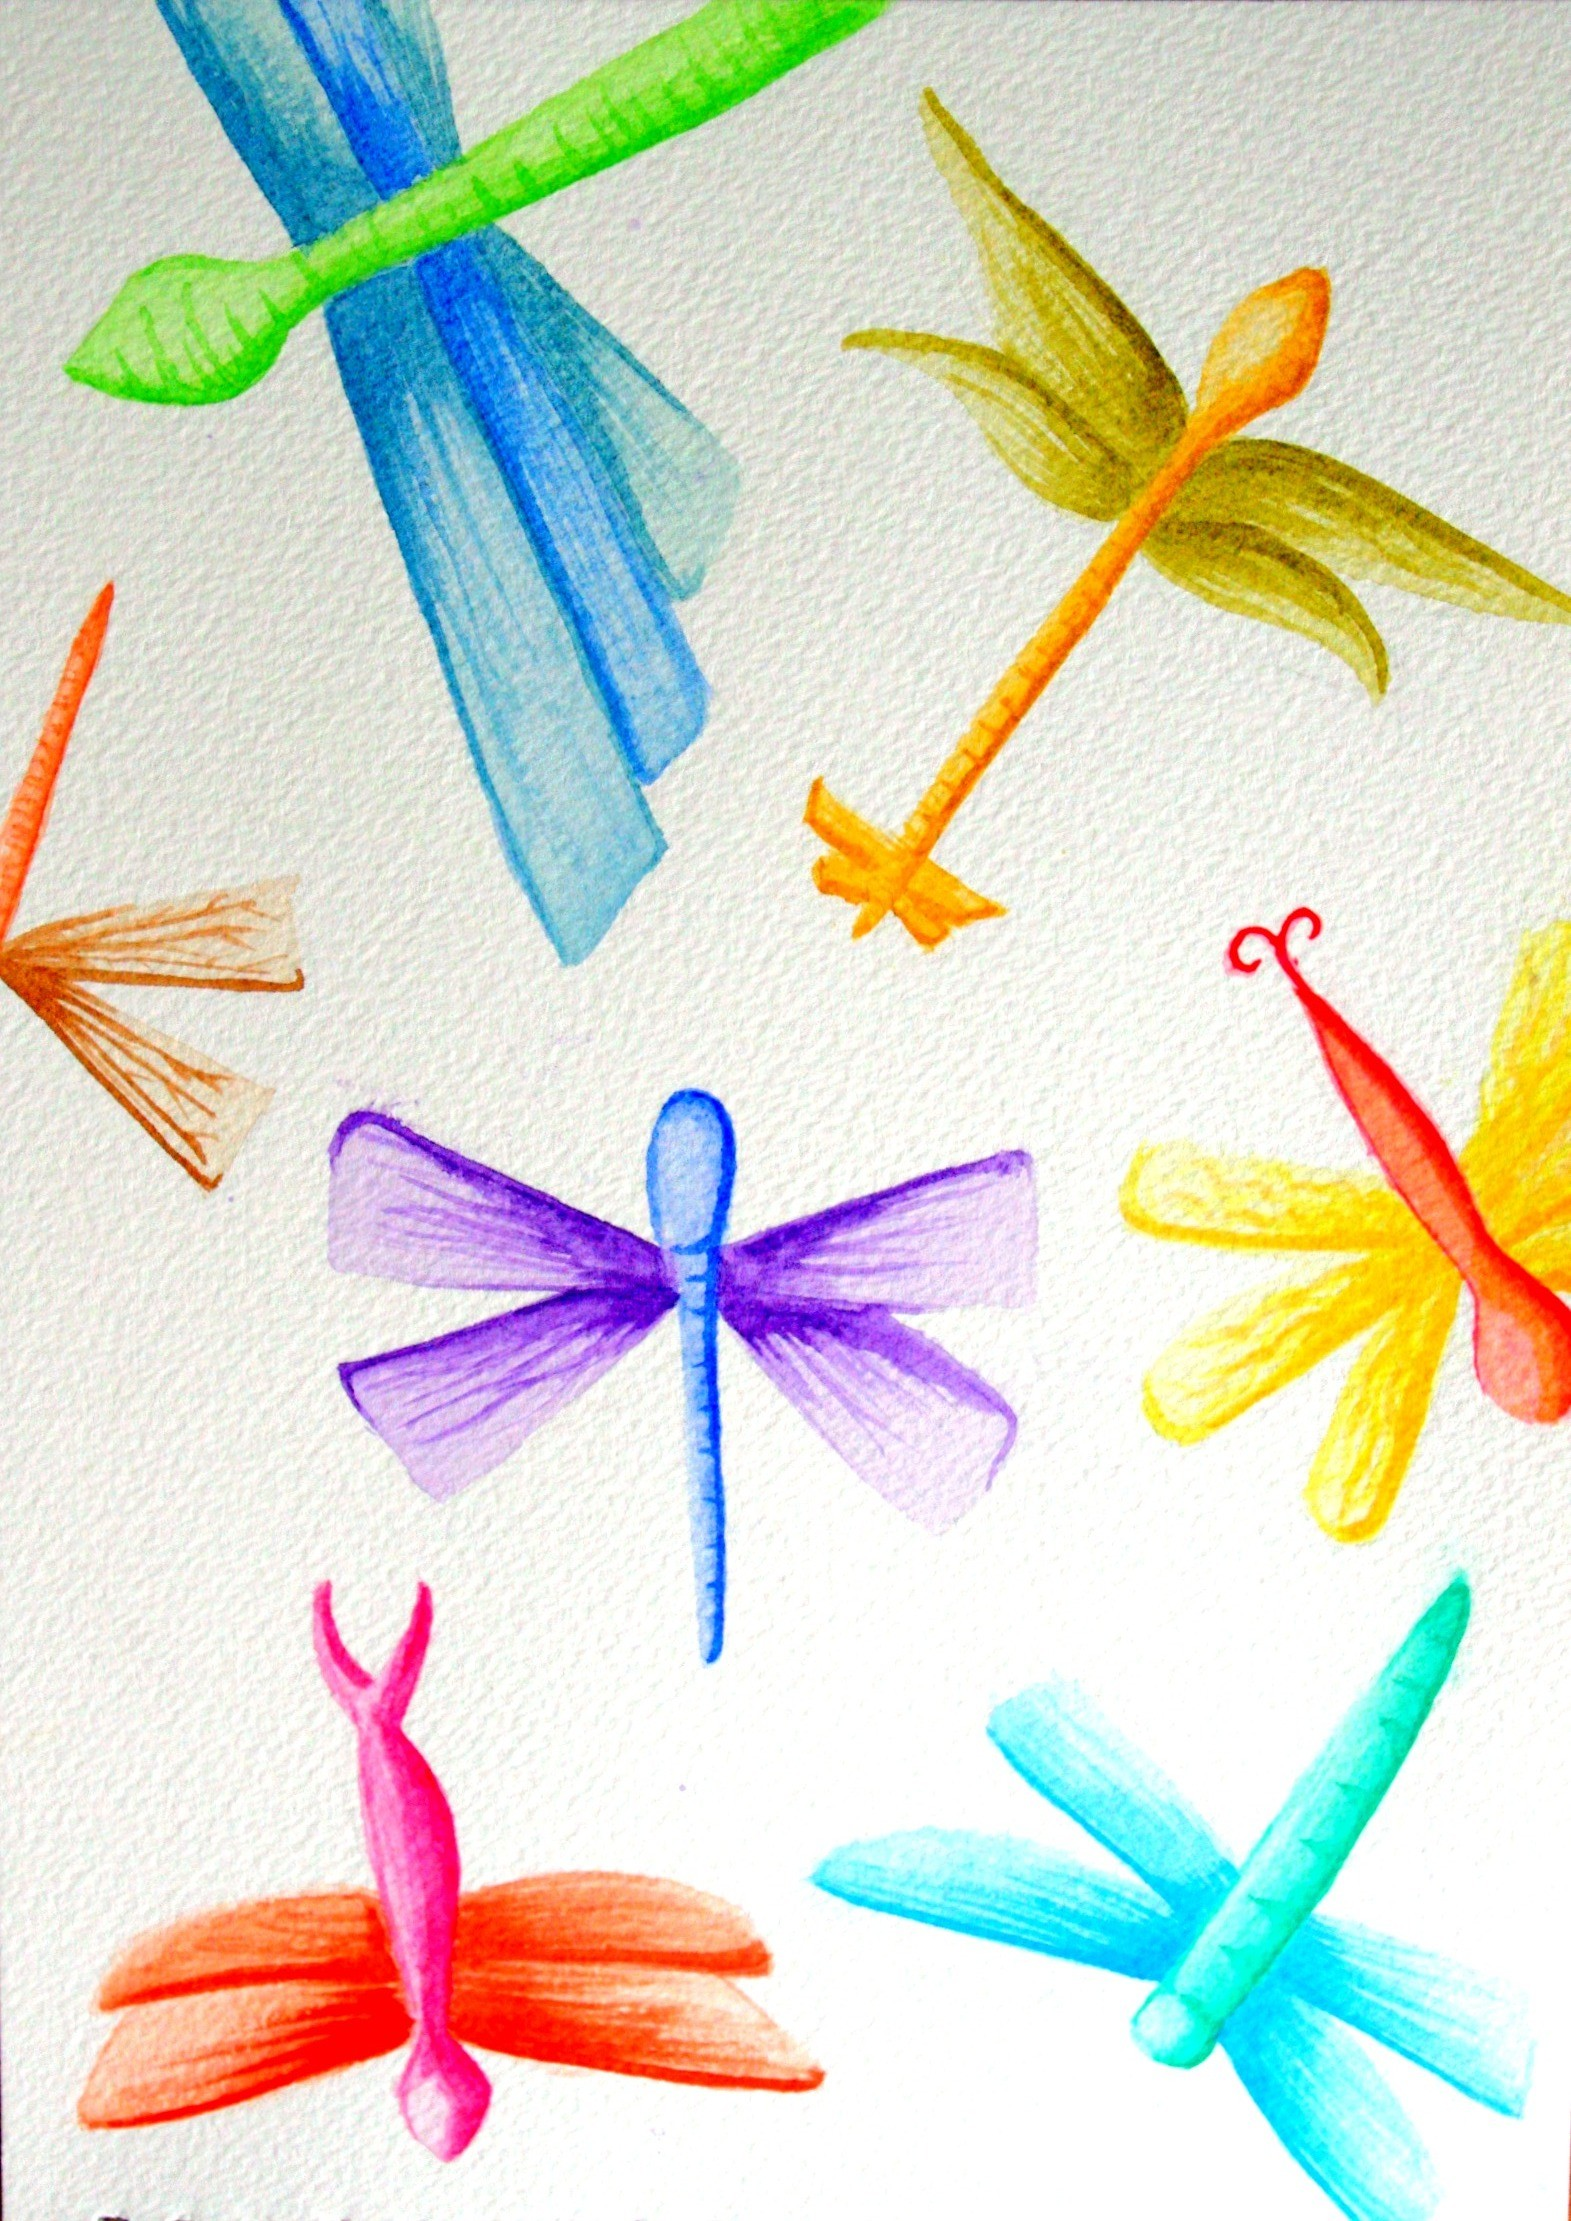 Res: 1571x2221, Dragonfly Wallpaper by oxlunaxo Dragonfly Wallpaper by oxlunaxo